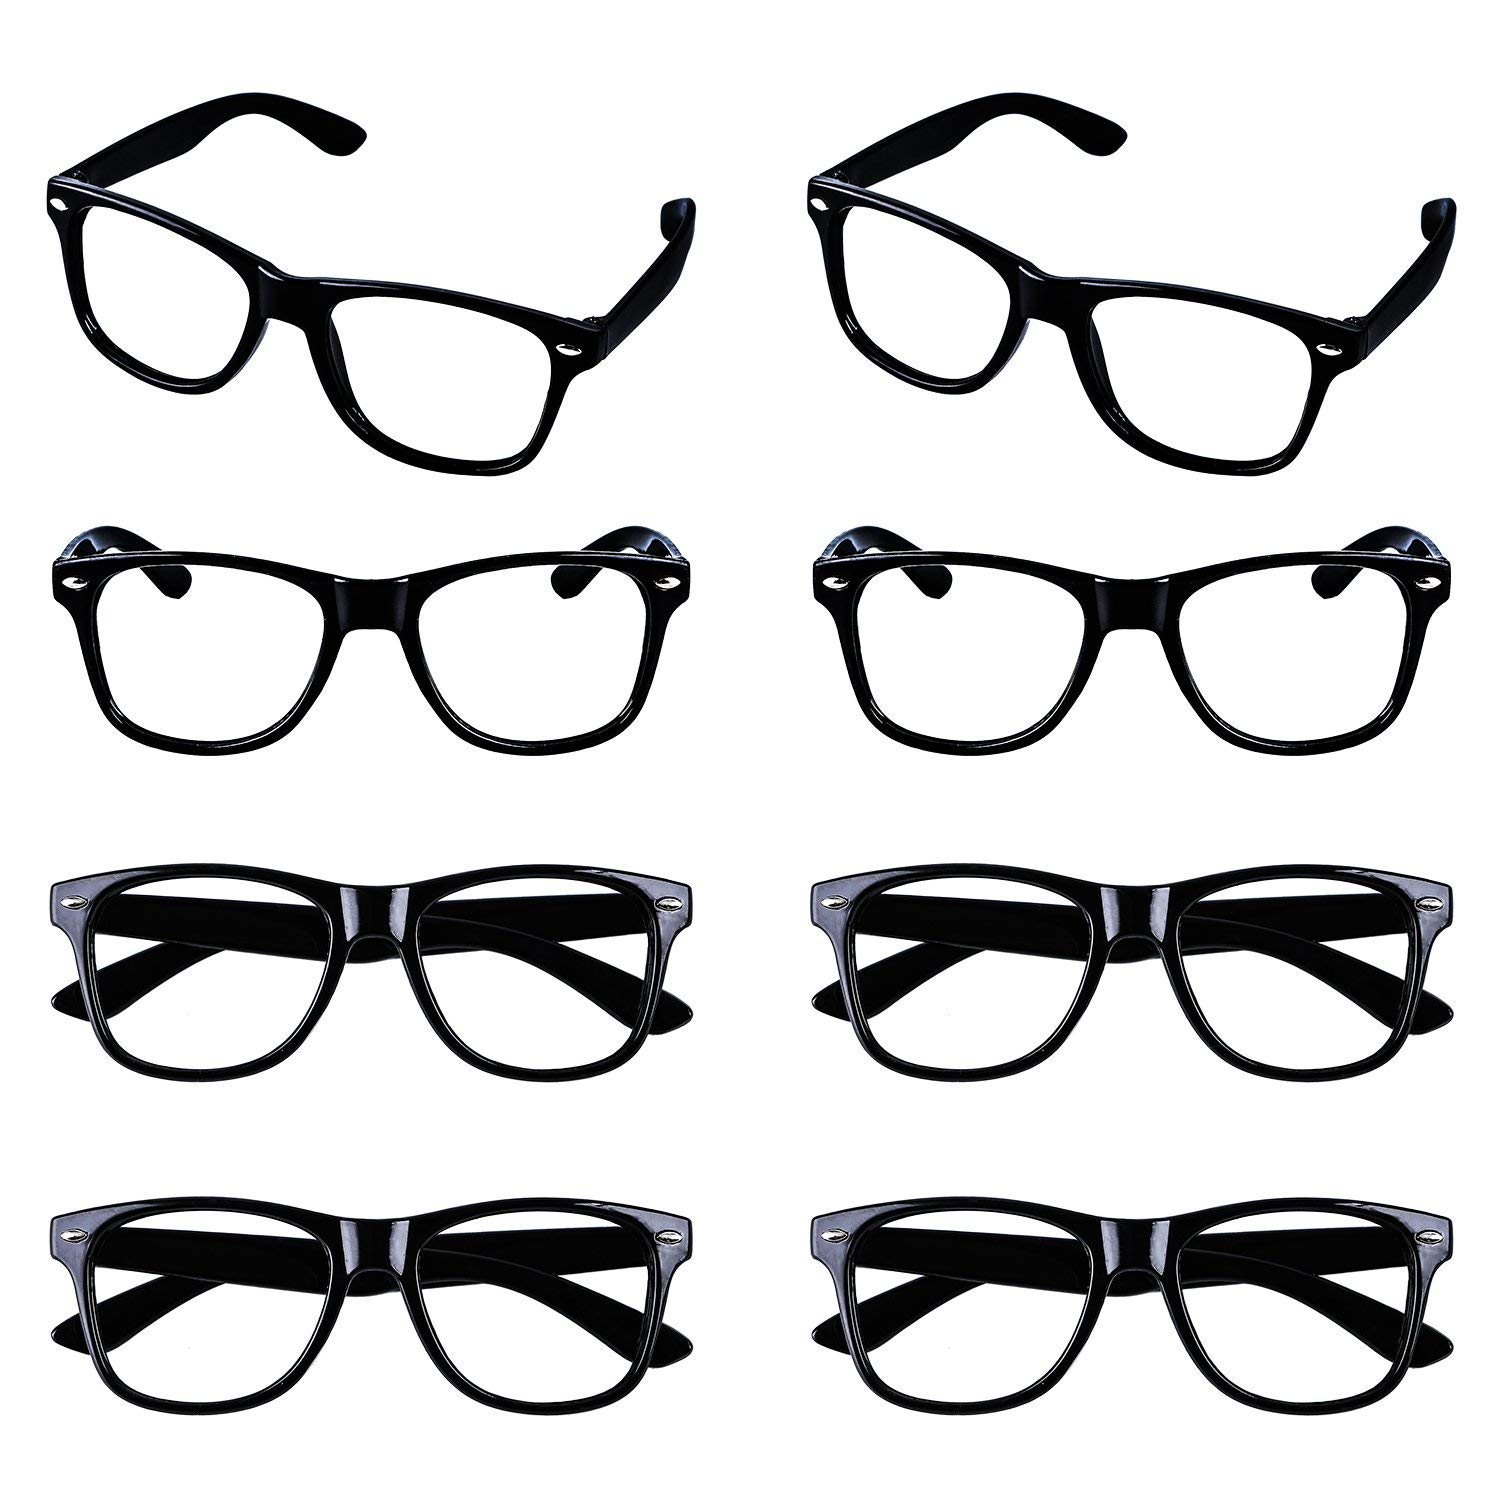 19a2472da8 Get Quotations · Aneco 8 Pairs Kids Wizard Nerd Glasses Rectangle Glasses  Frame No Lenses For Children s Costume Party